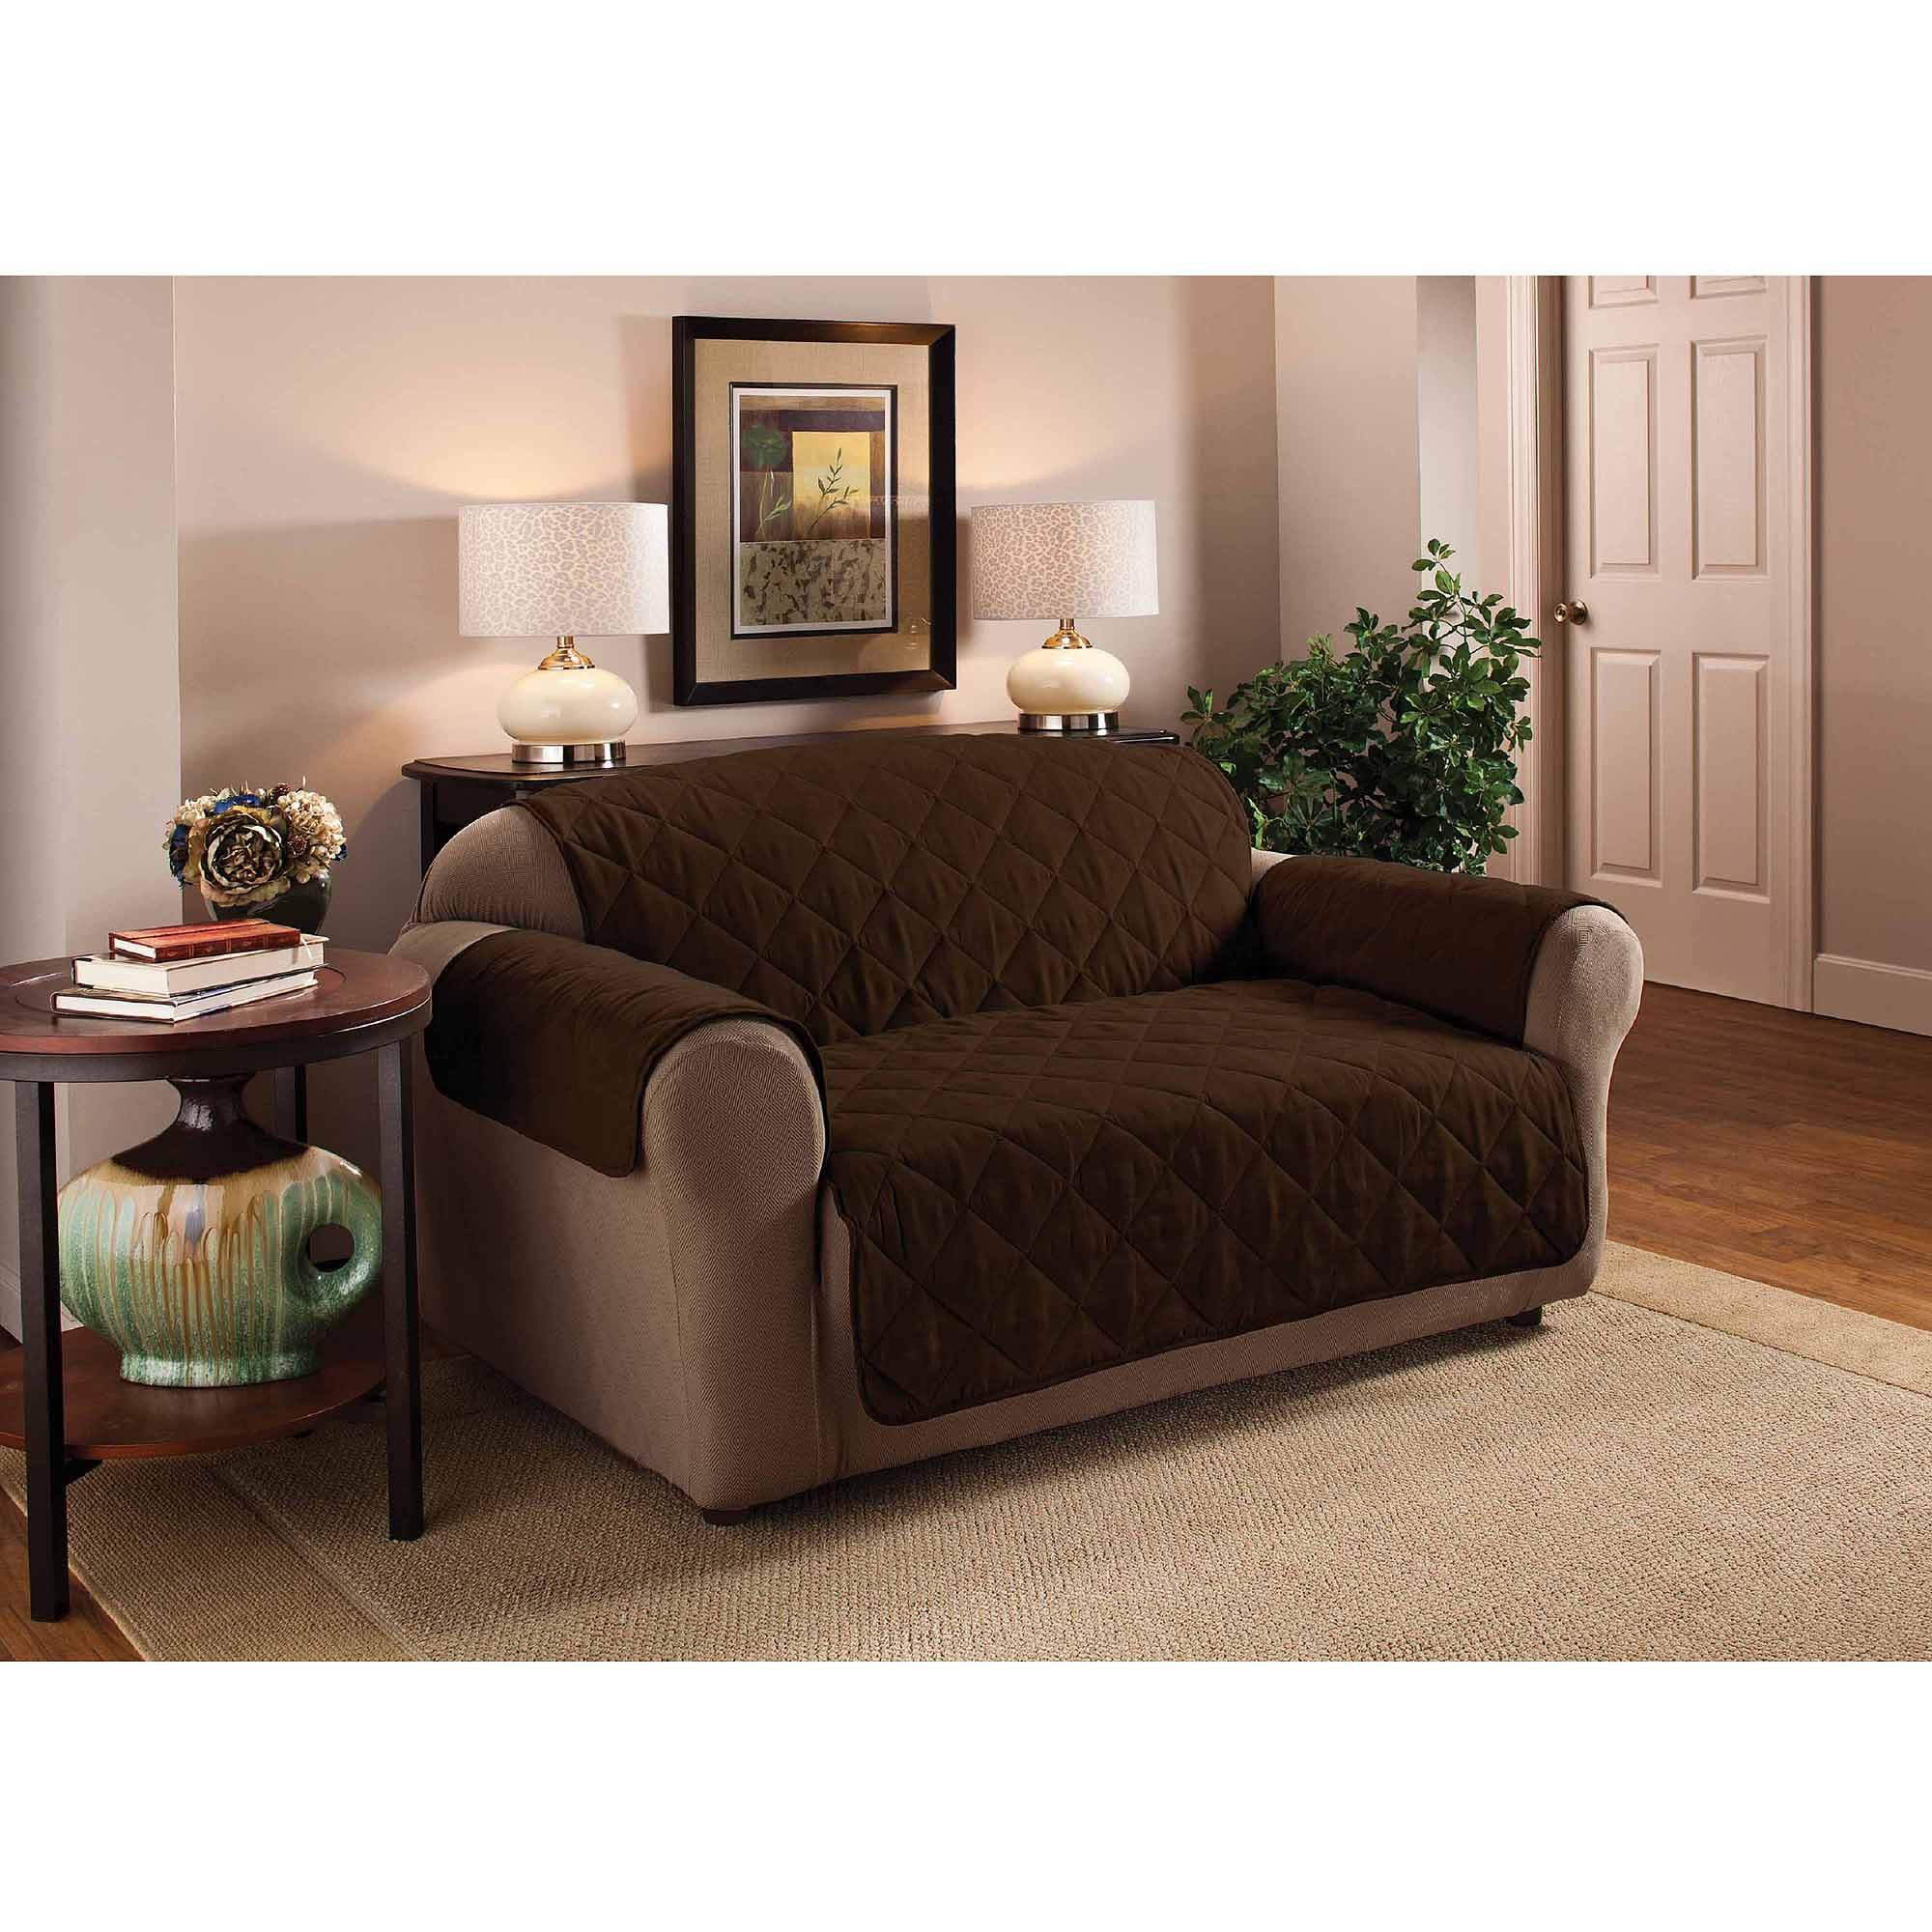 Mainstays Reversible Microfiber 3 Piece Loveseat Furniture Cover Protector    Walmart.com